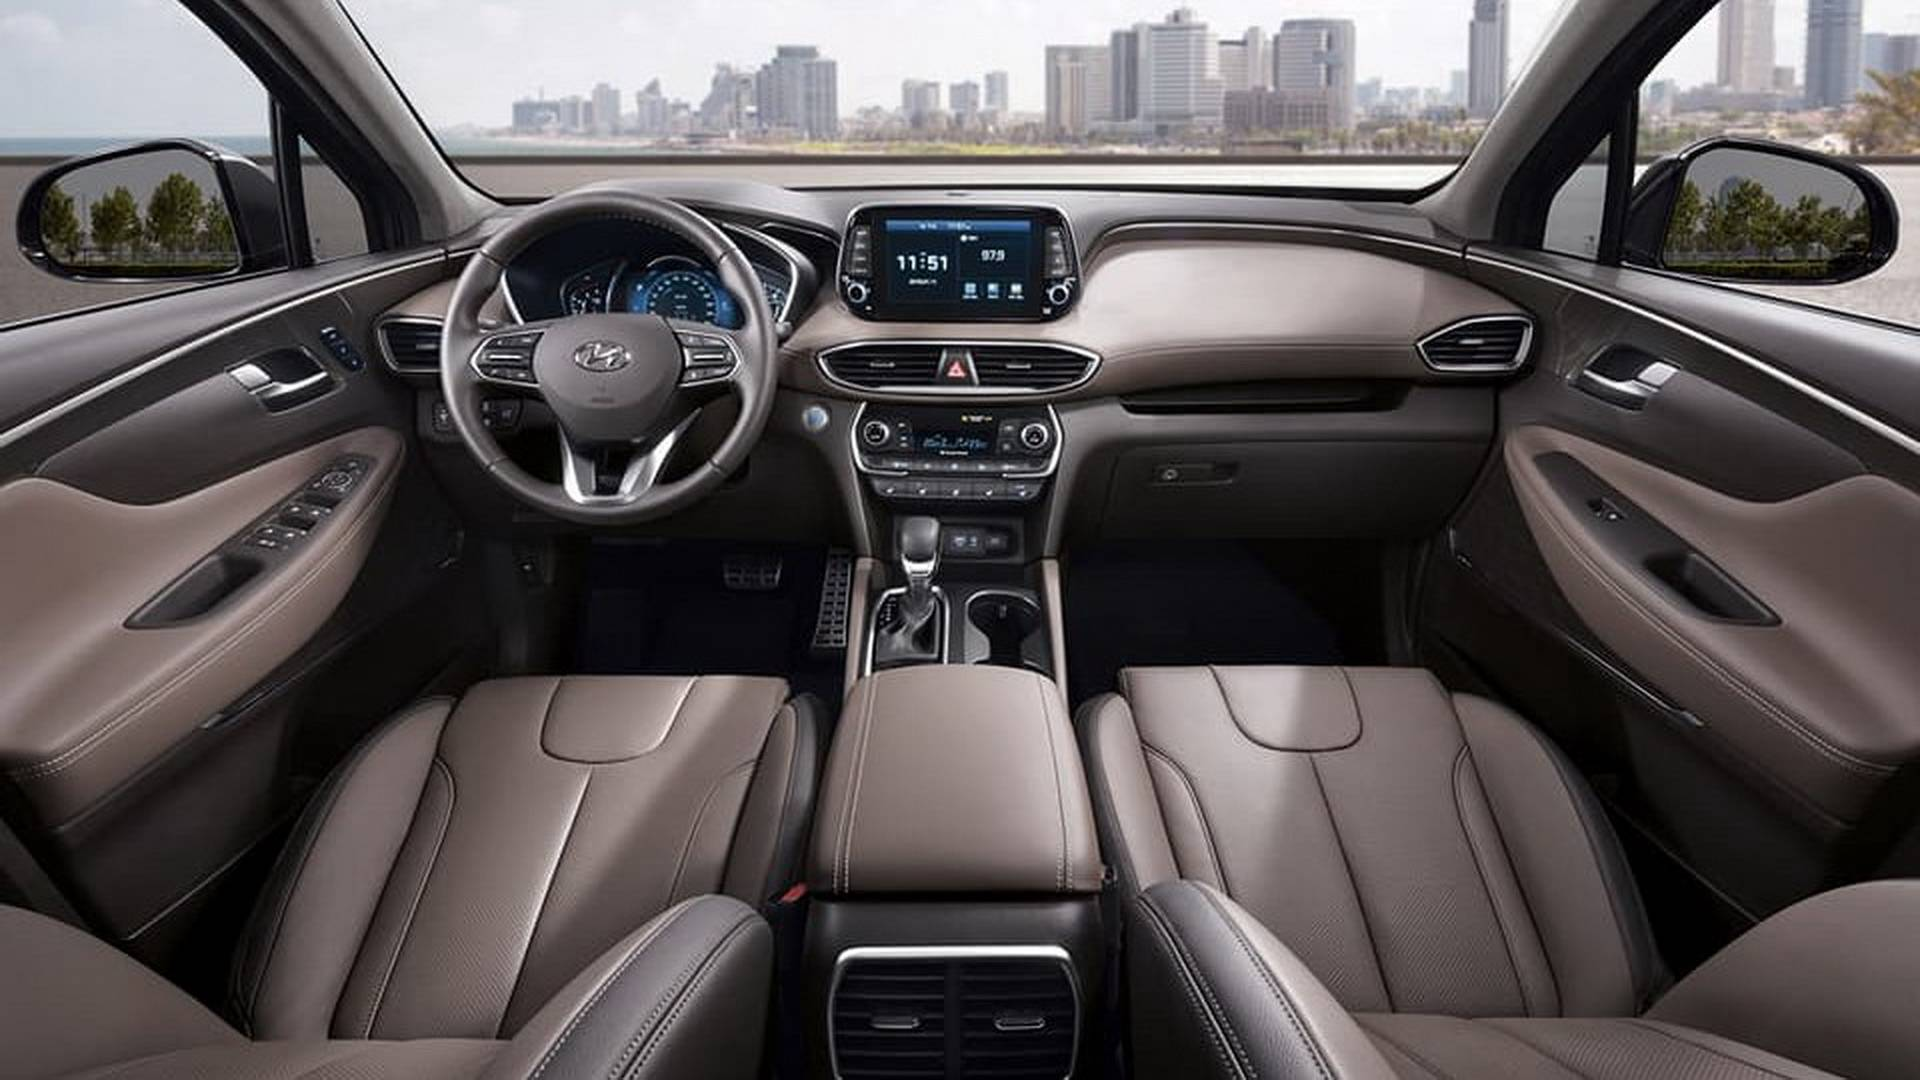 2019 Hyundai Santa Fe Design Price >> 2019 Hyundai Santa Fe Official Images Reveal a Completely New SUV - autoevolution